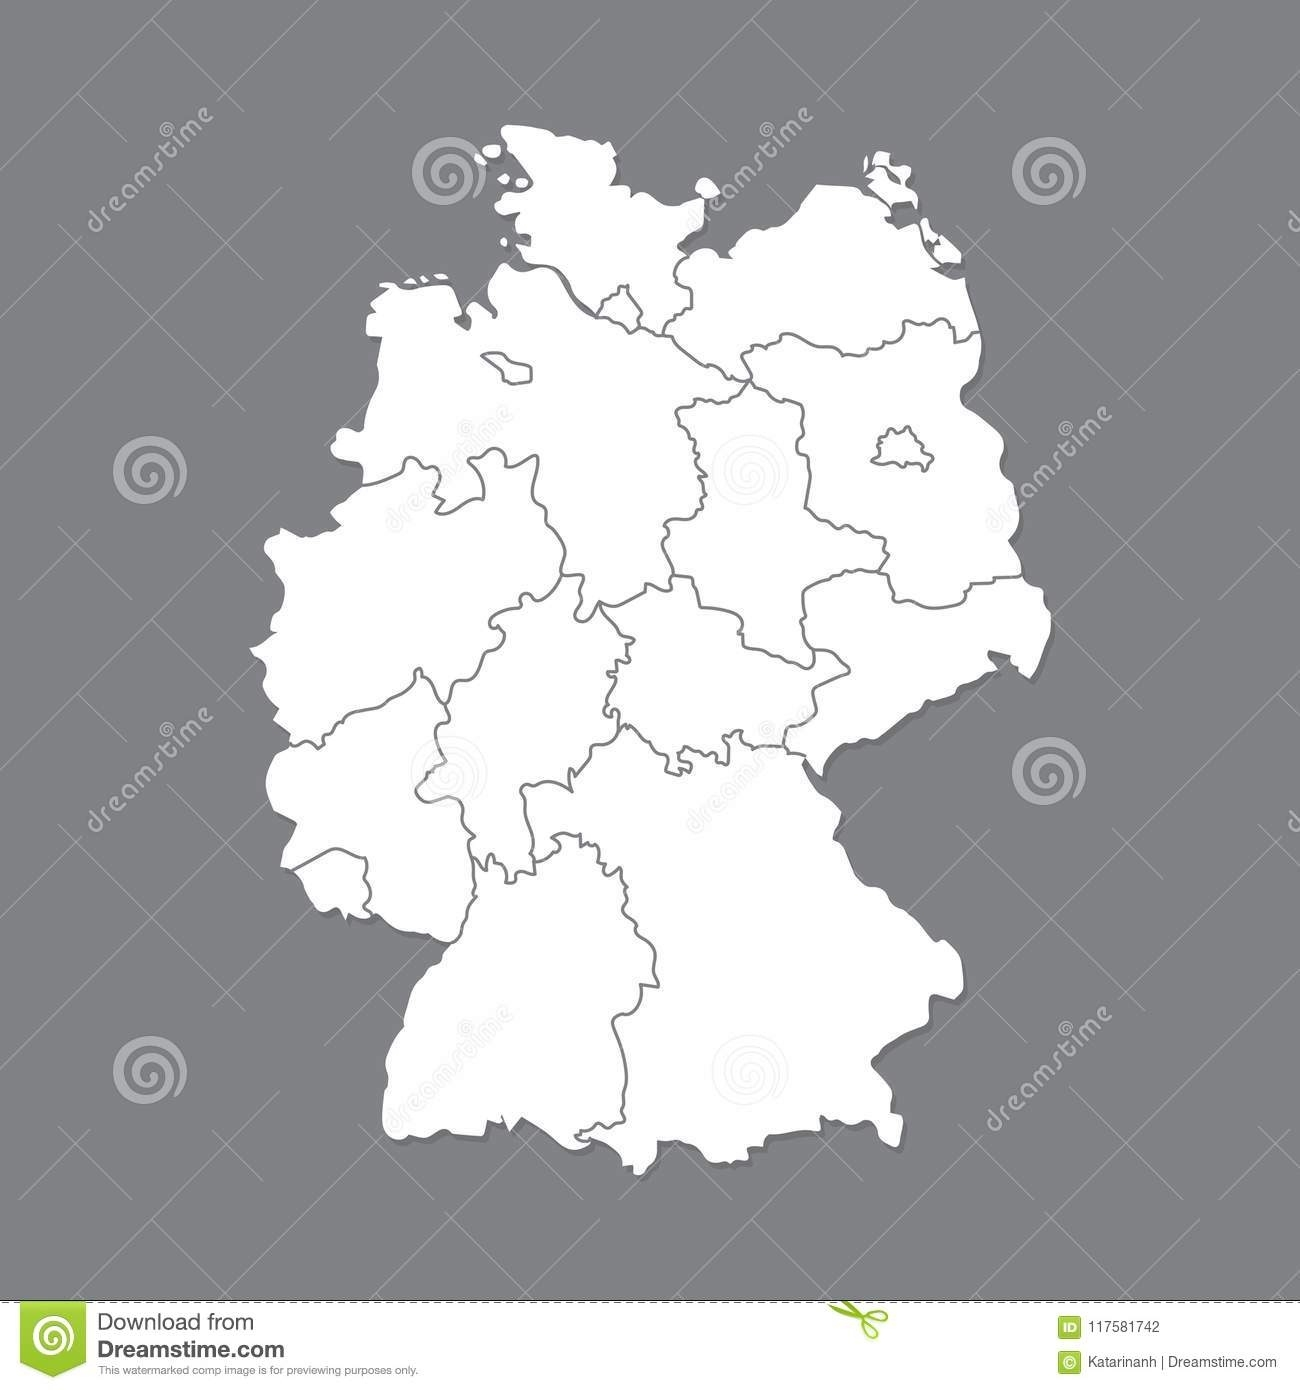 Blank Map Germany. High Quality Map Of Germany With Borders Of The inside Blank Map Of Germany And Surrounding Countries